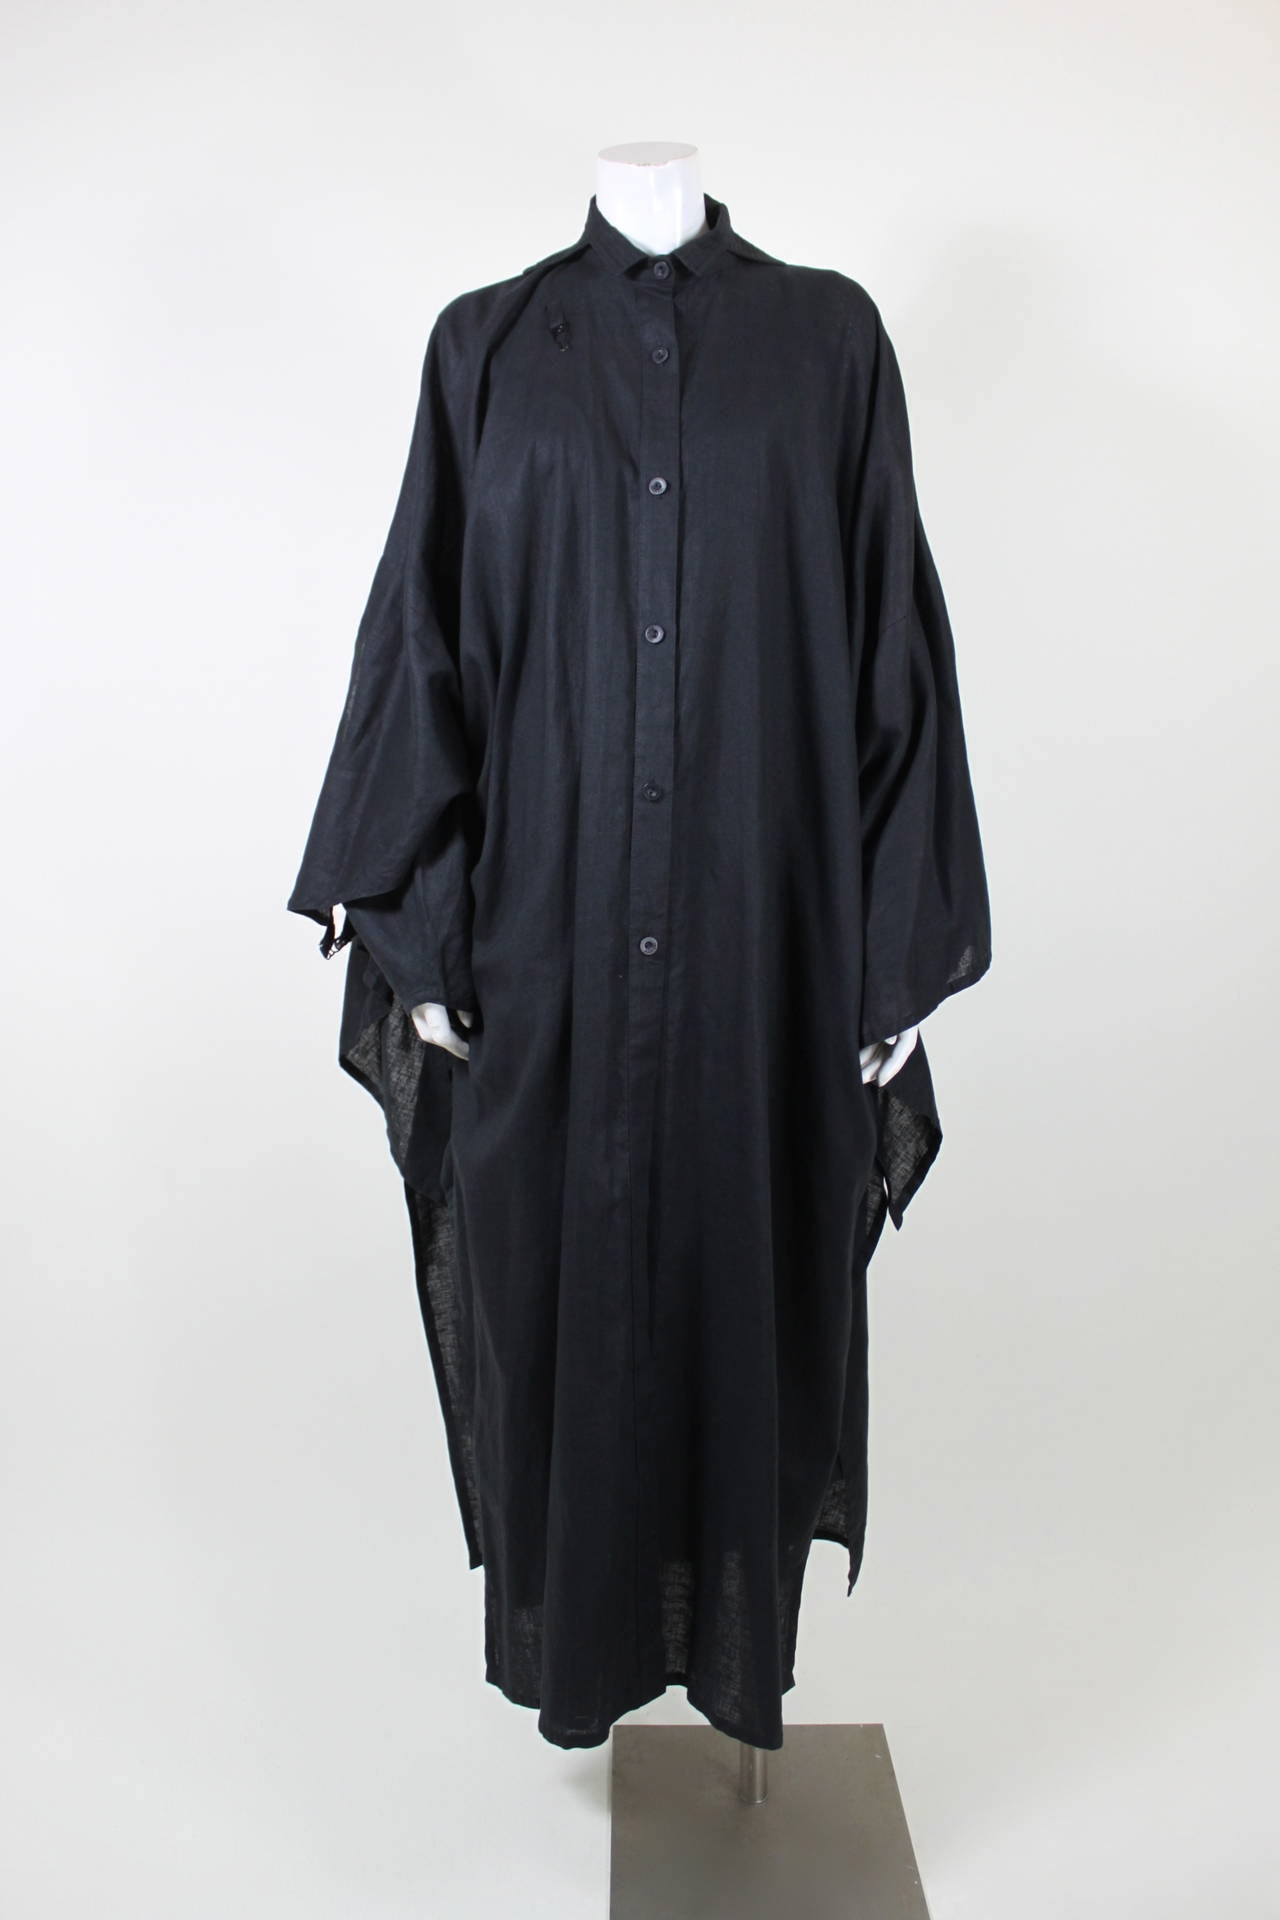 Kansai Black Linen Dress with Cocoon Coat 6